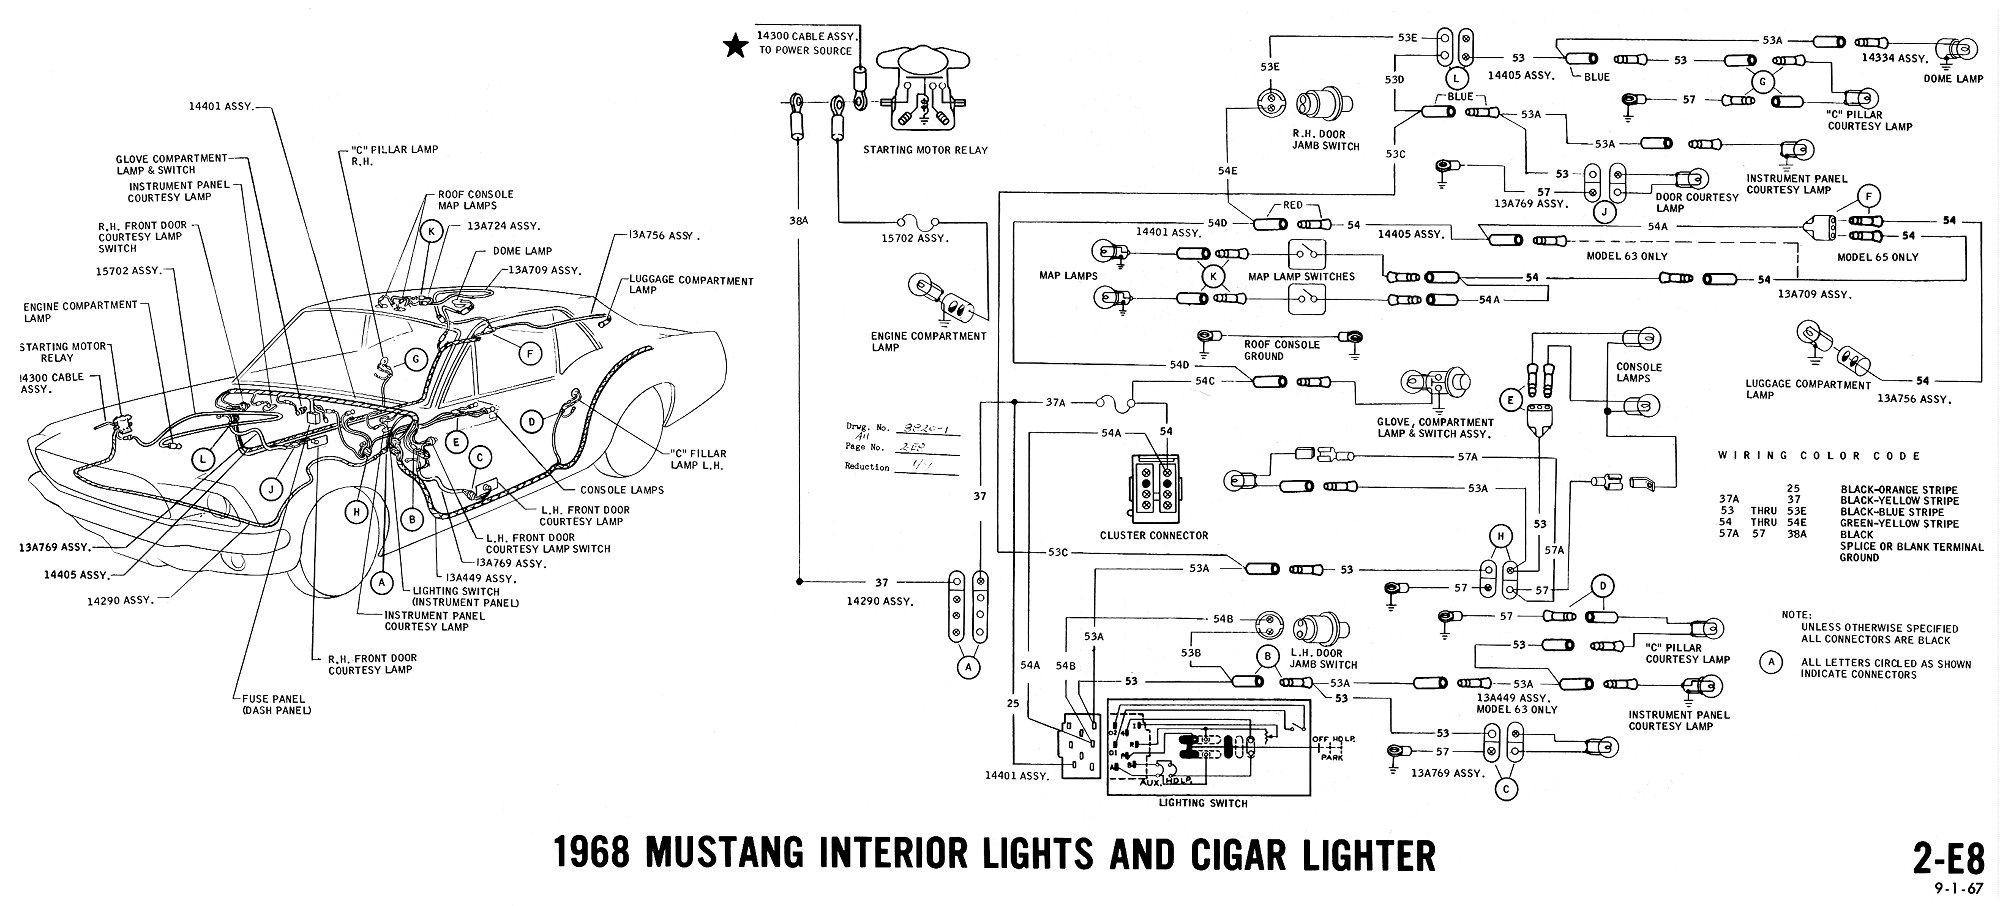 E8 66 mustang wiring diagram radio tape 66 mustang turn signal wiring 1966 mustang fuse box diagram at bayanpartner.co